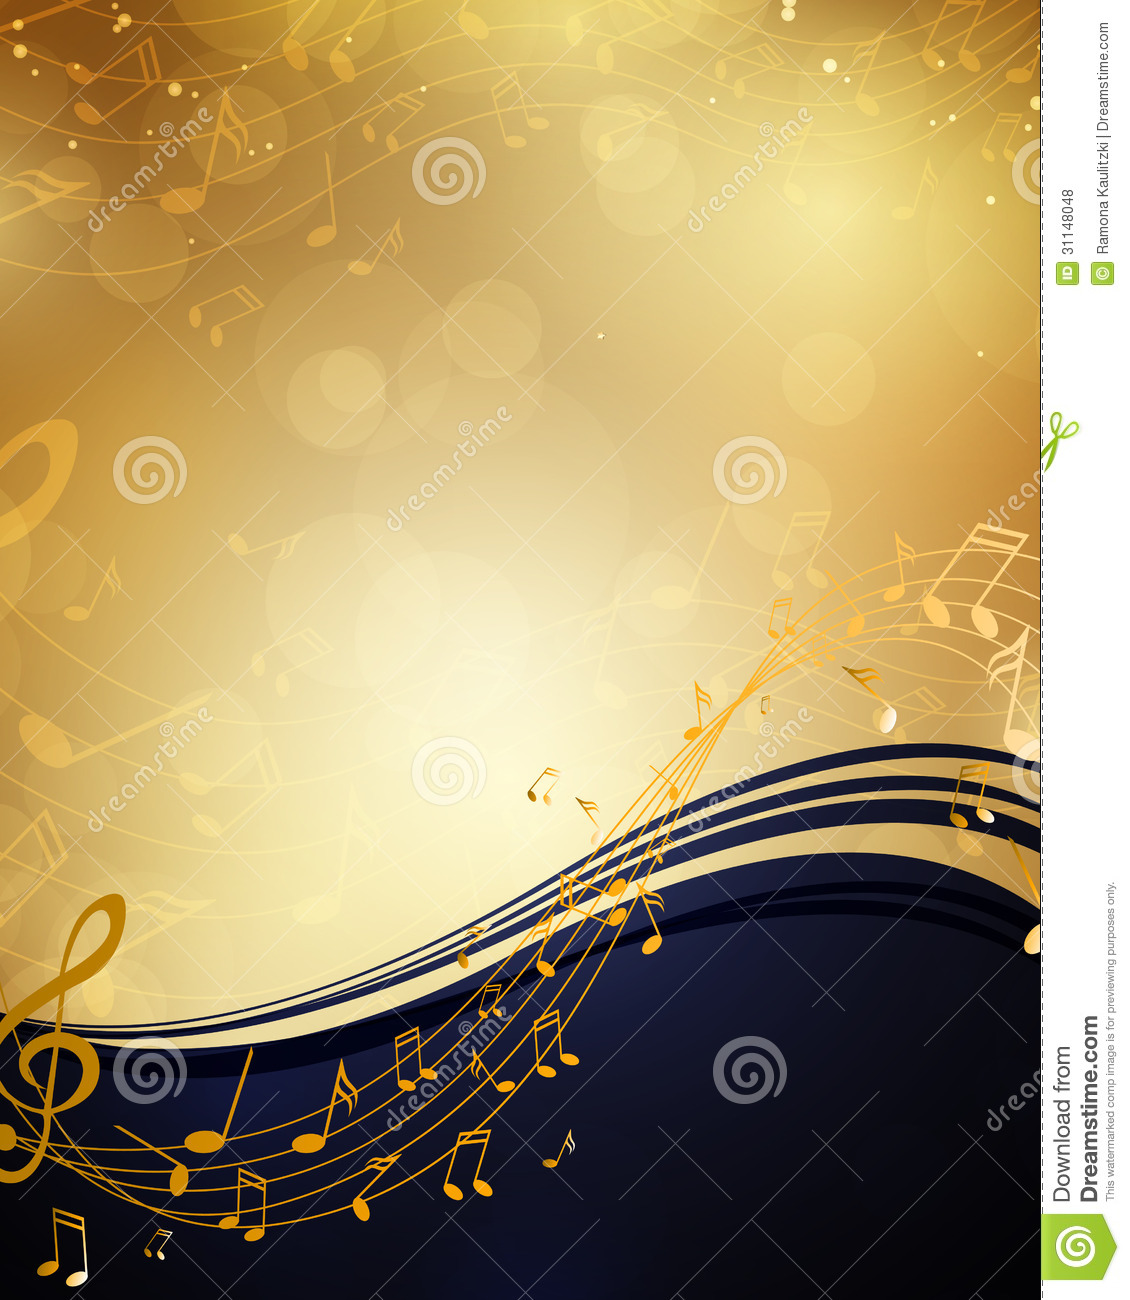 music poster royalty free stock photos image 31148048 piano clip art free images piano clip art free black and white